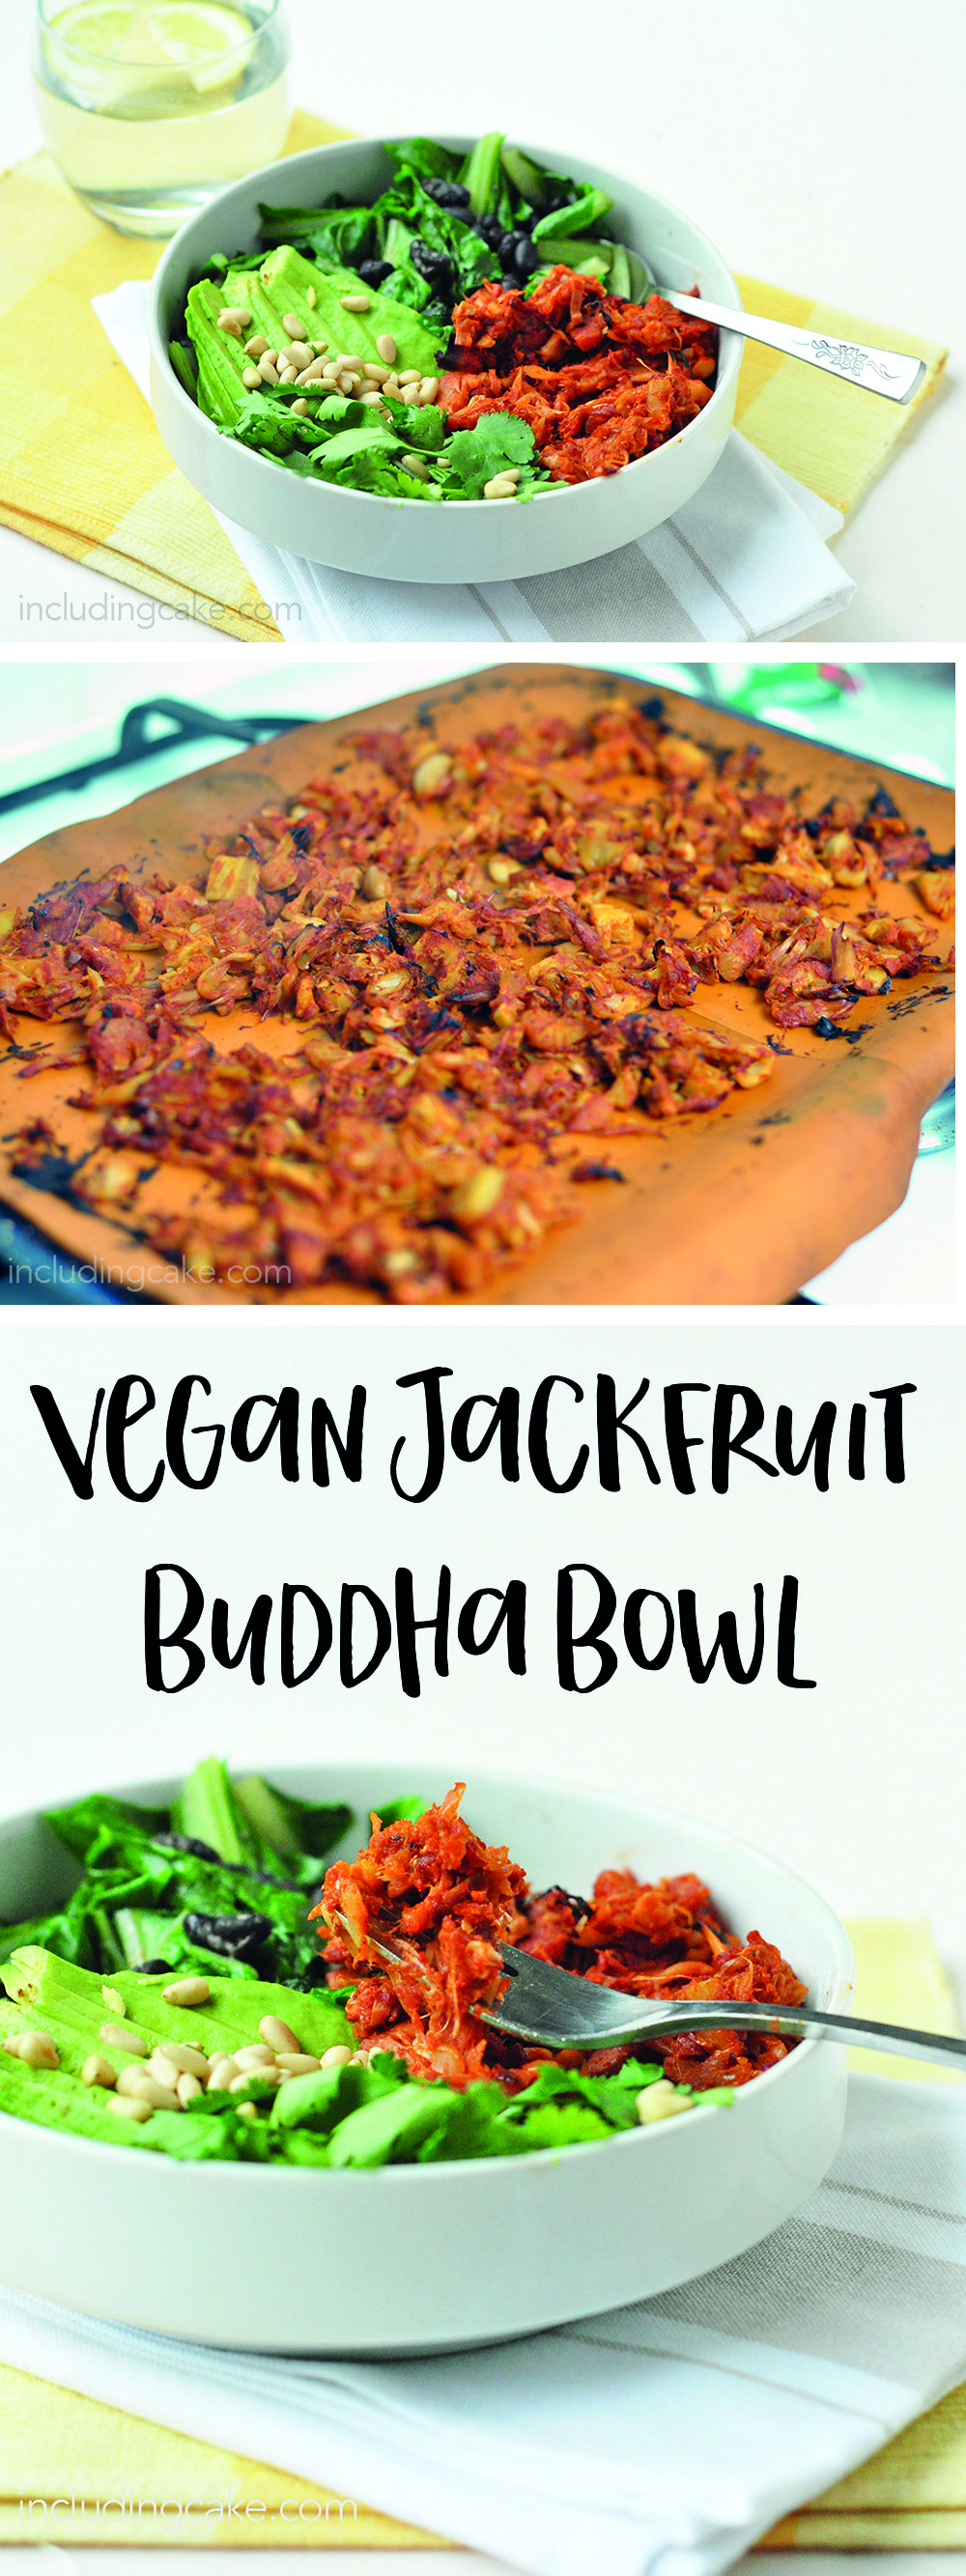 Recipe: BBQ Jackfruit Buddha Bowl.jpg